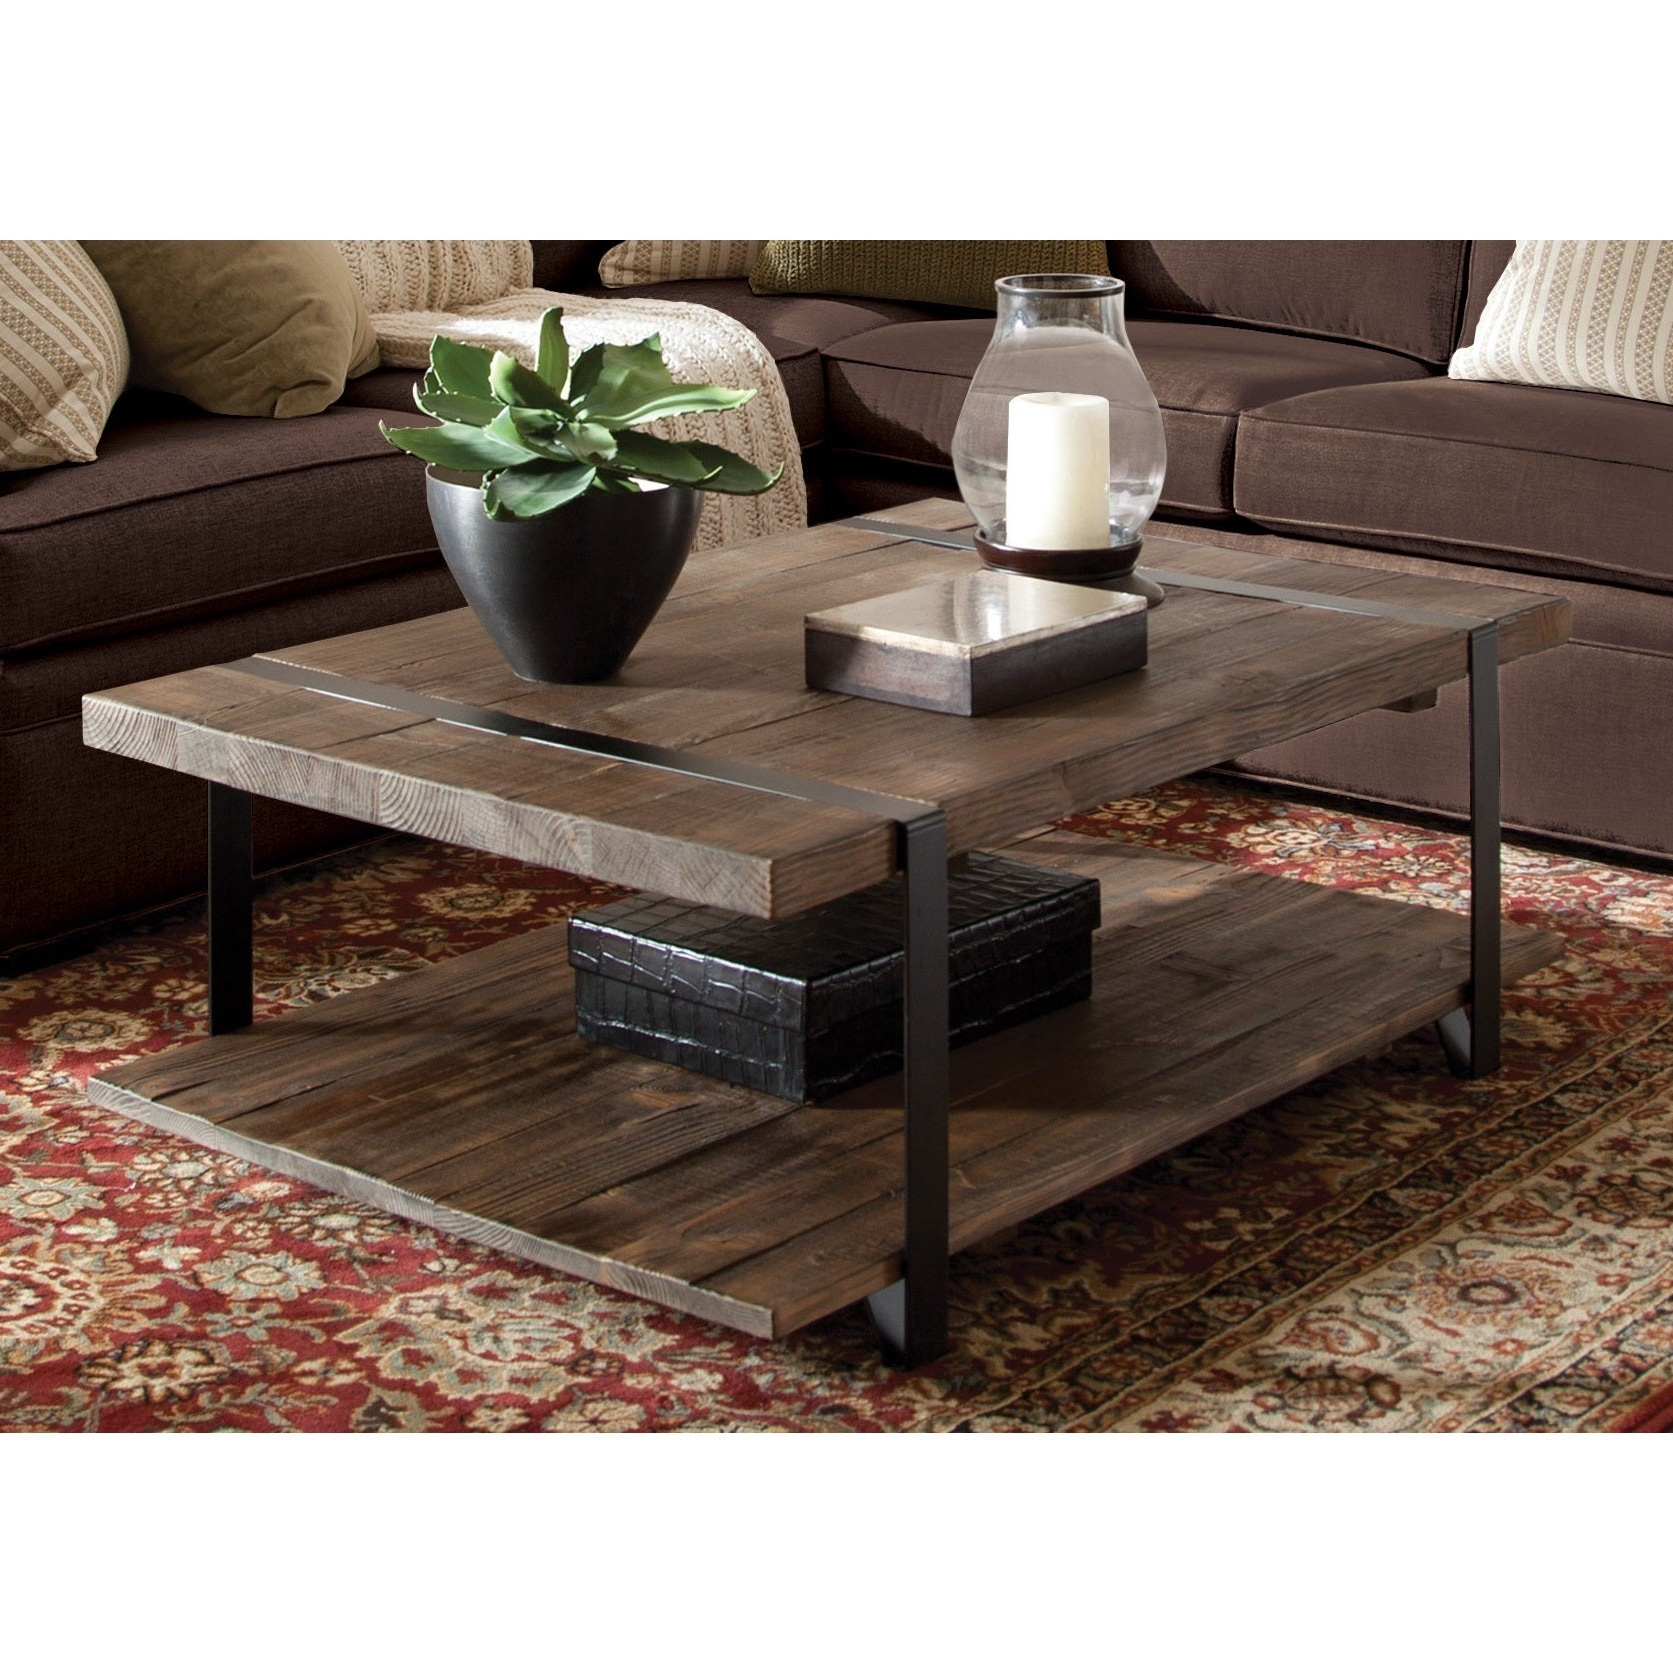 Carbon Loft Kenyon Natural Finished Reclaimed Wood Large Coffee Table In 2020 Carbon Loft Kenyon Natural Rustic Coffee Tables (View 4 of 20)